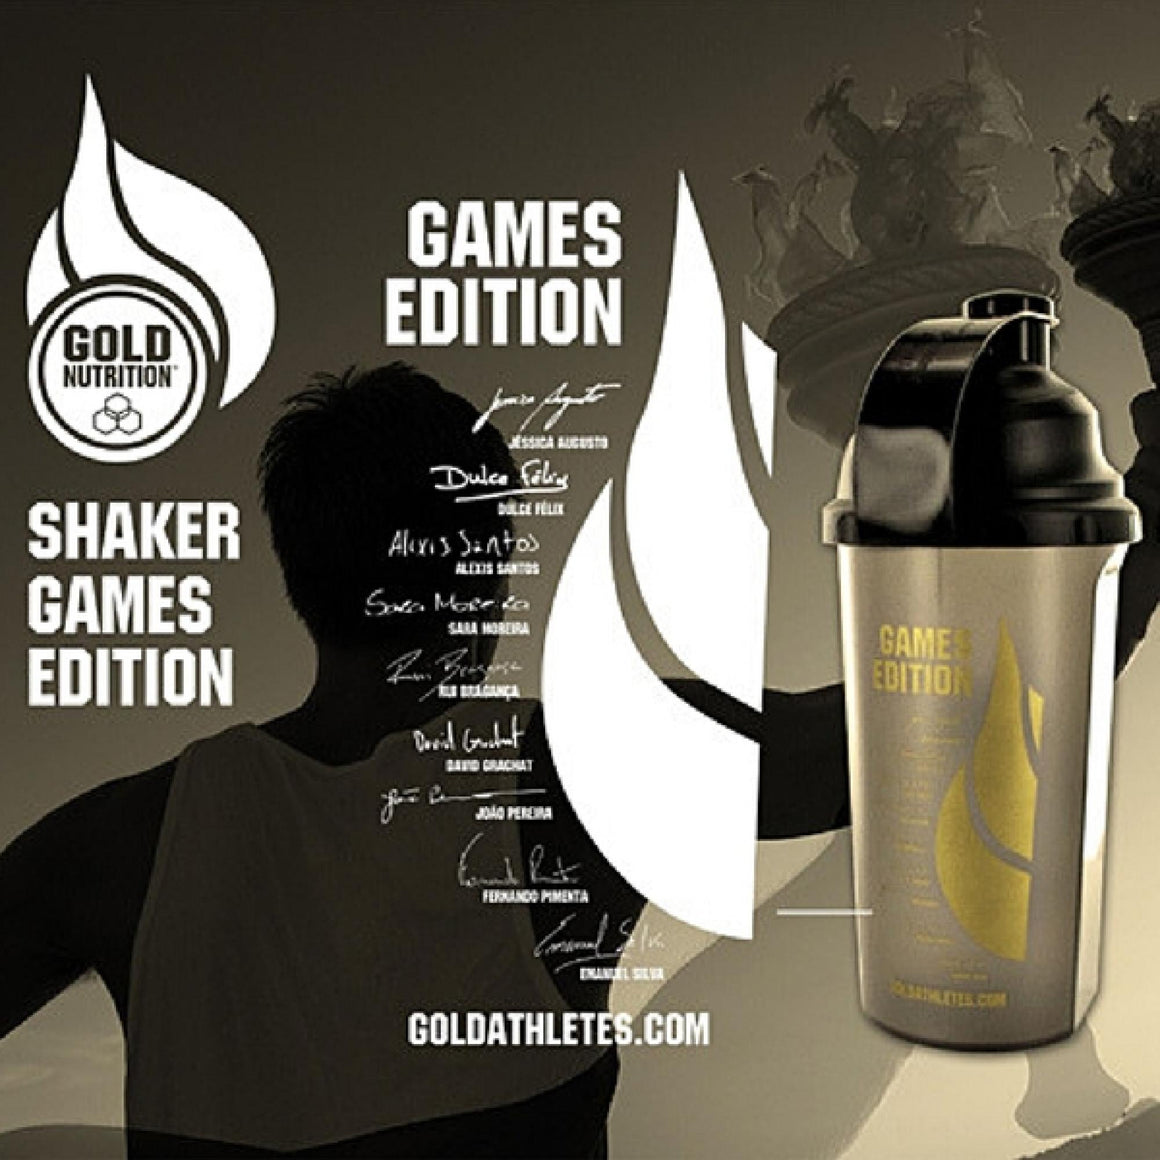 Shaker Games Edition